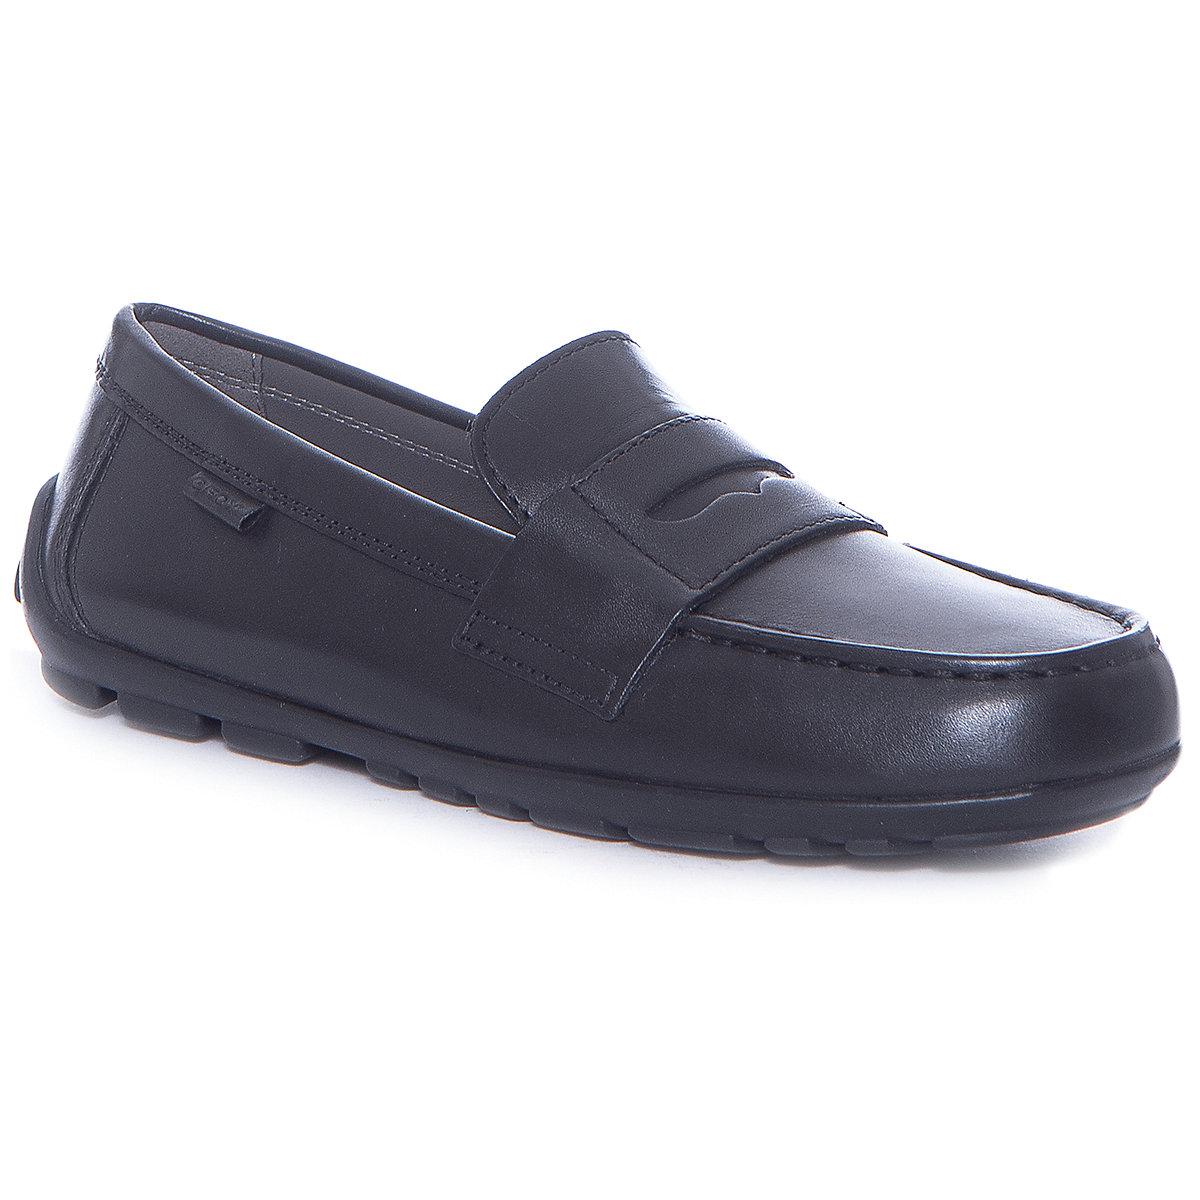 GEOX Children Casual Shoes 8786617 Boys for boy childrens spring/summer Leather school shoes MTpromo miyagina high quality genuine leather women shoes female casual fashion flats spring autumn driving shoes women leather loafers